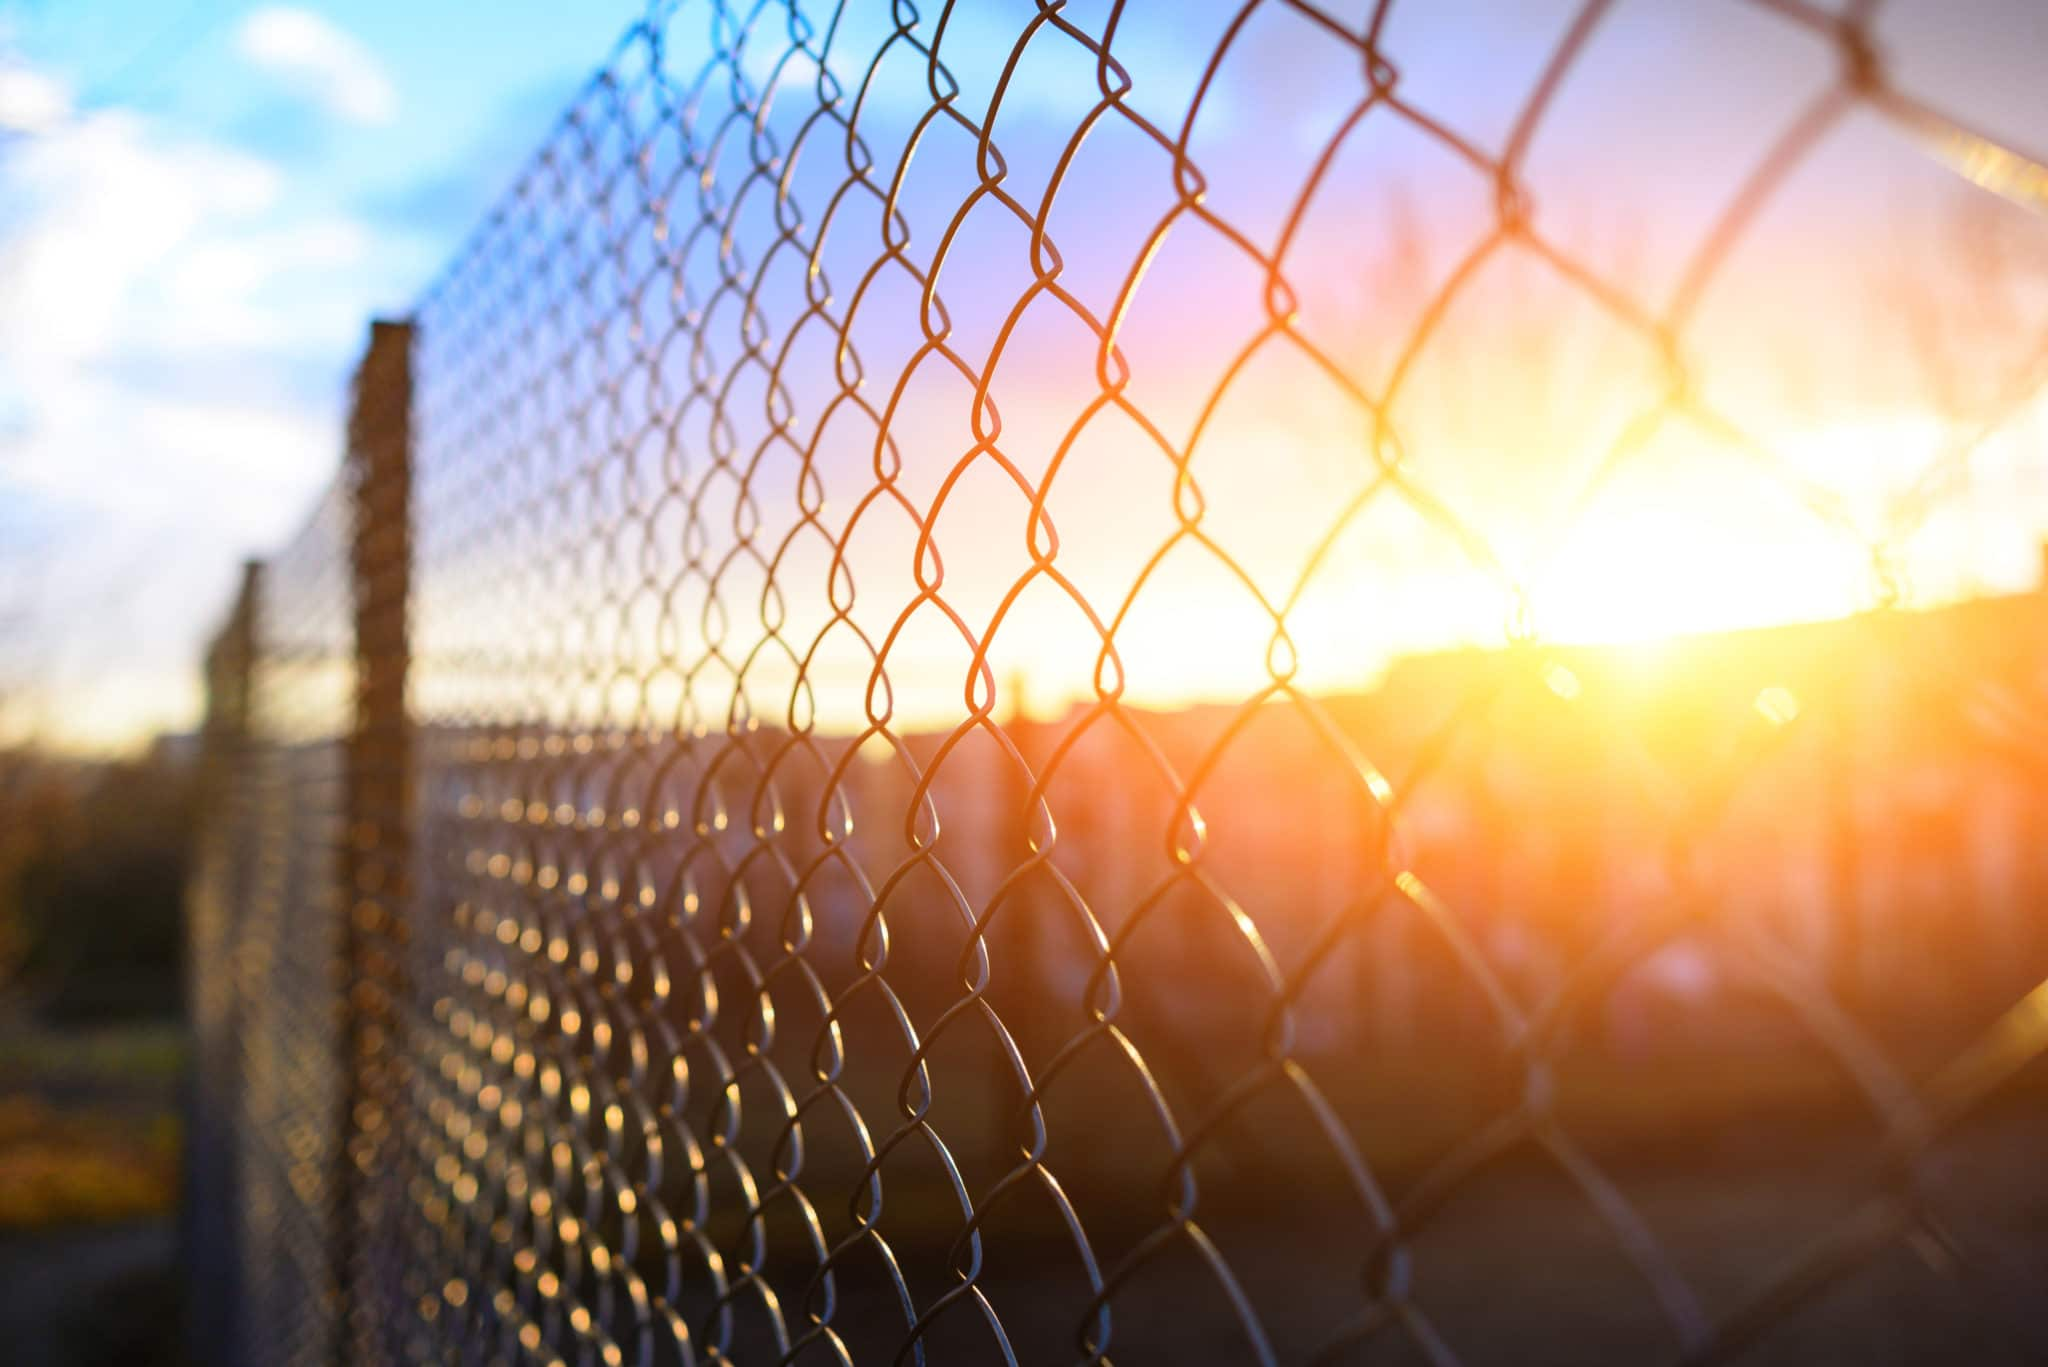 A metal prison fence is in the foregournd with a beautiful sunset behind the fence in the distance.